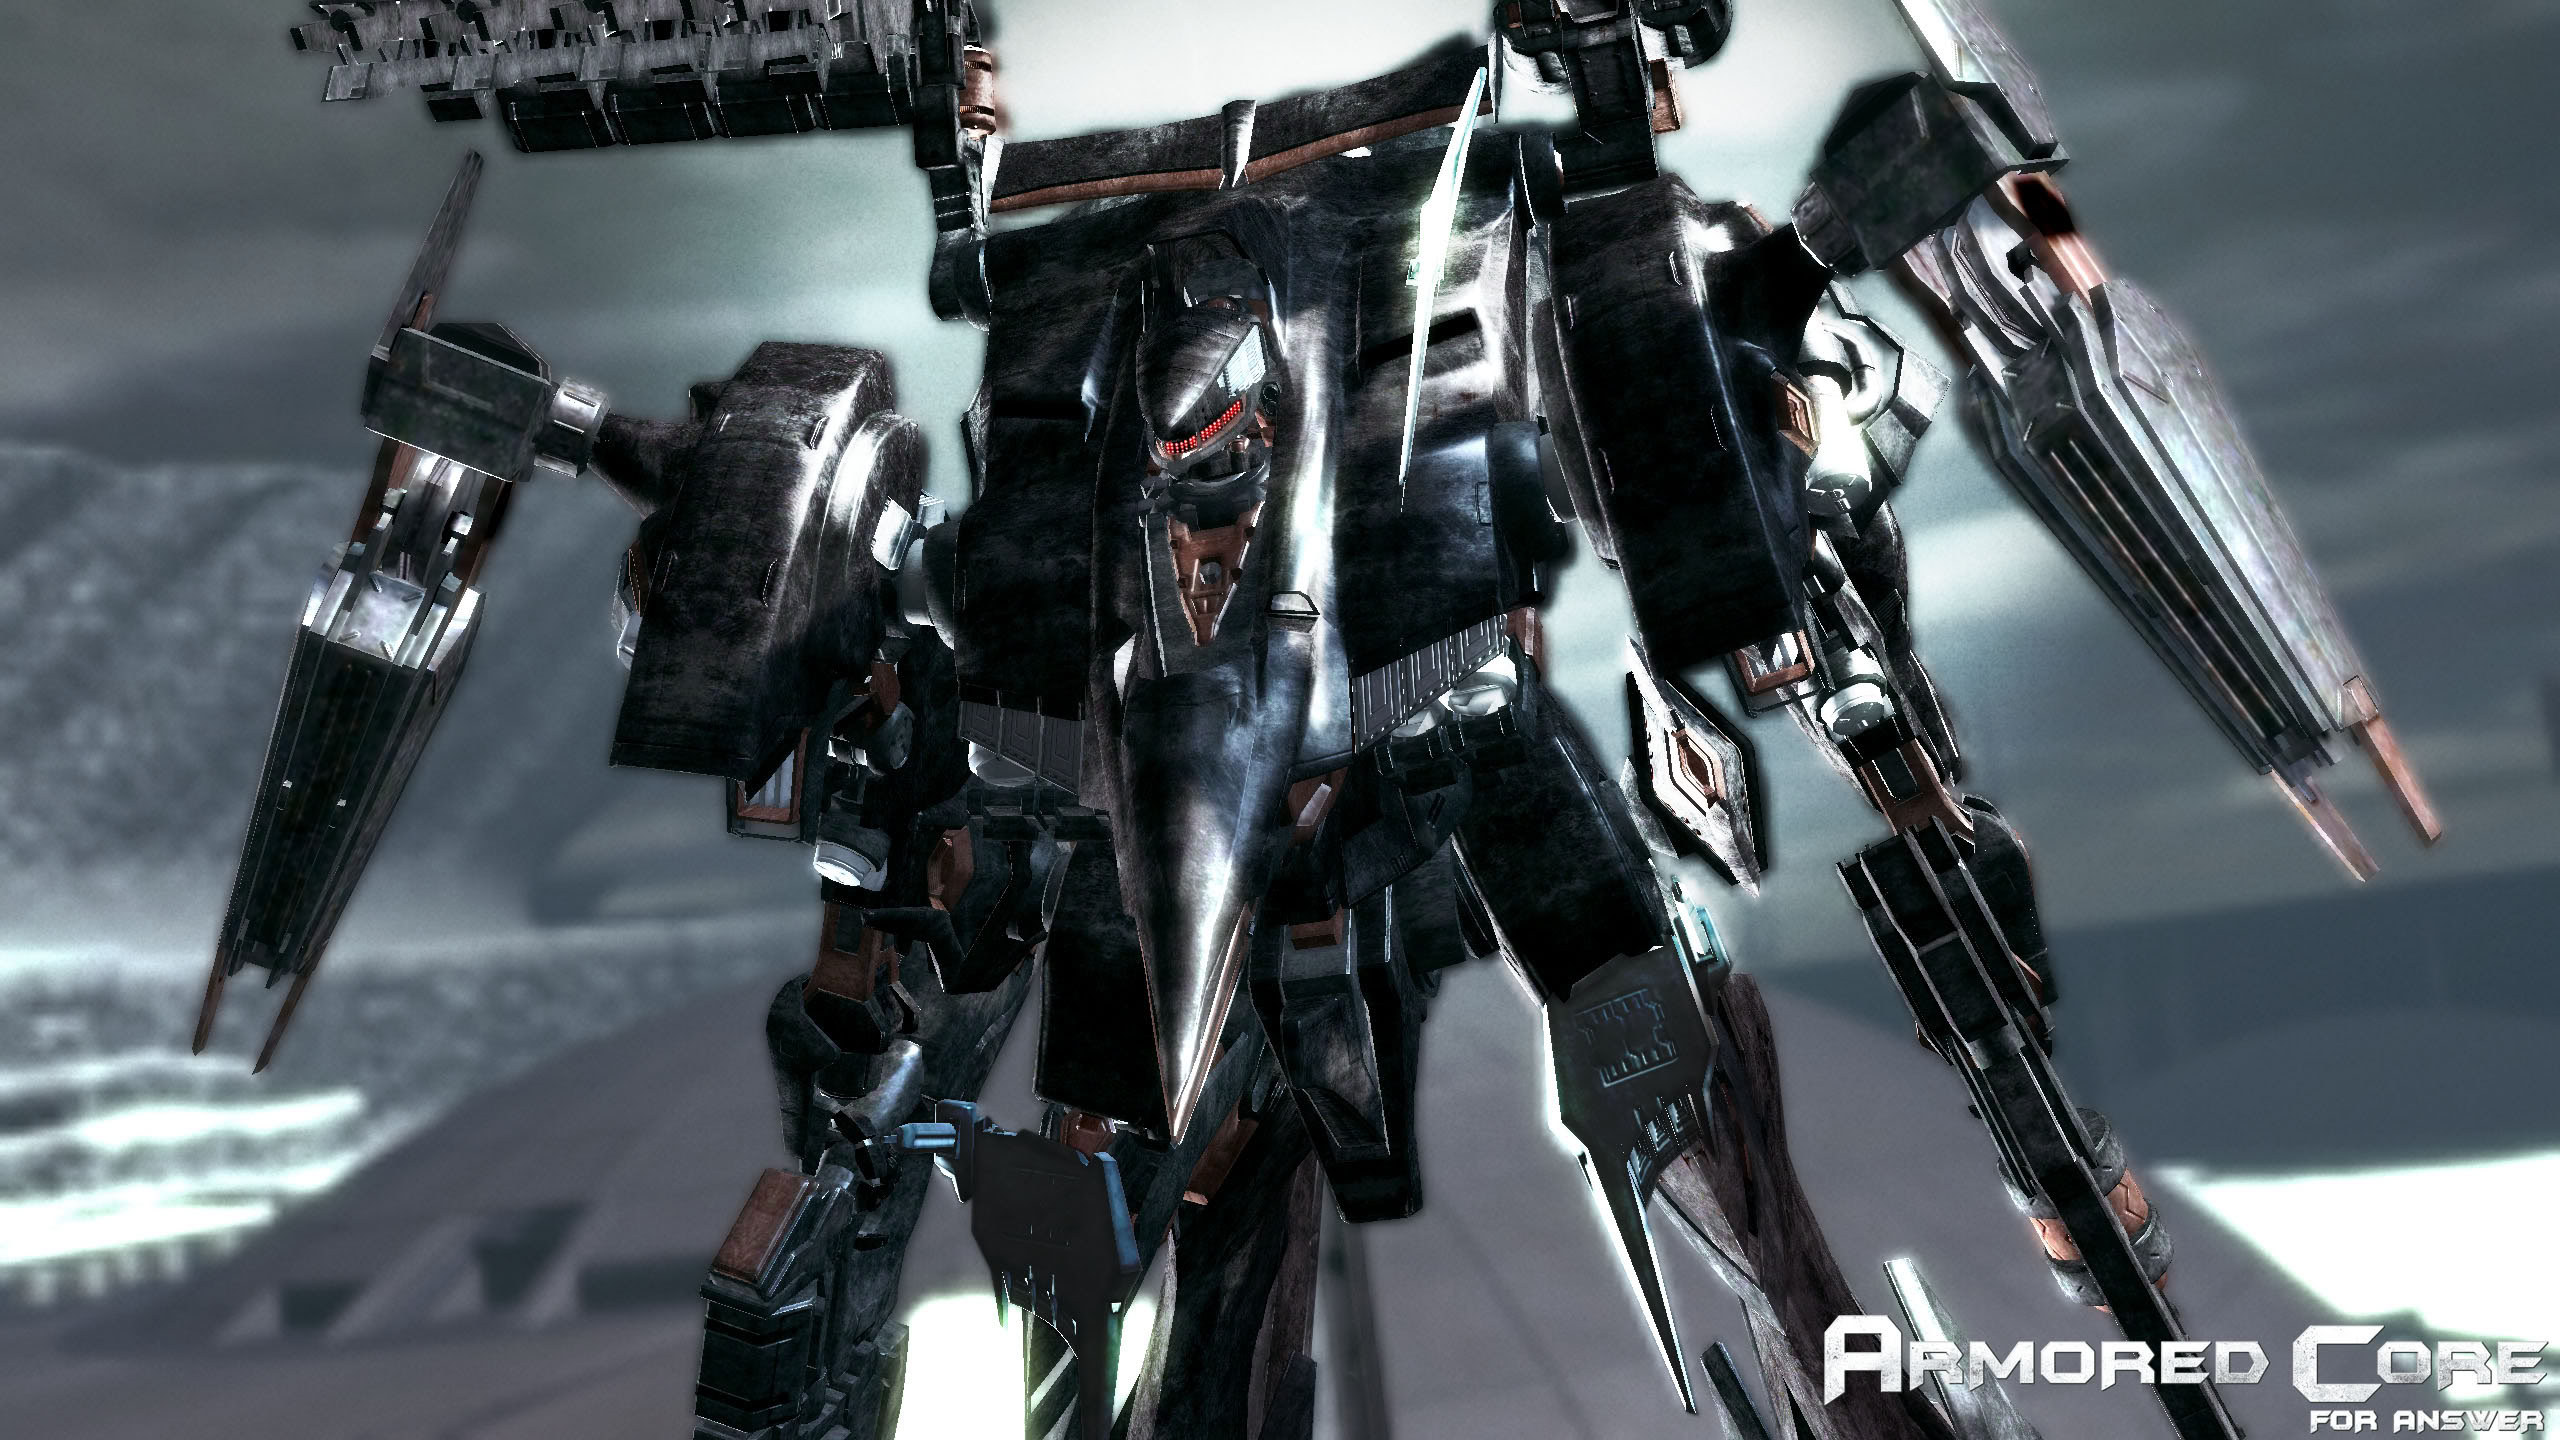 Armored Core View Original